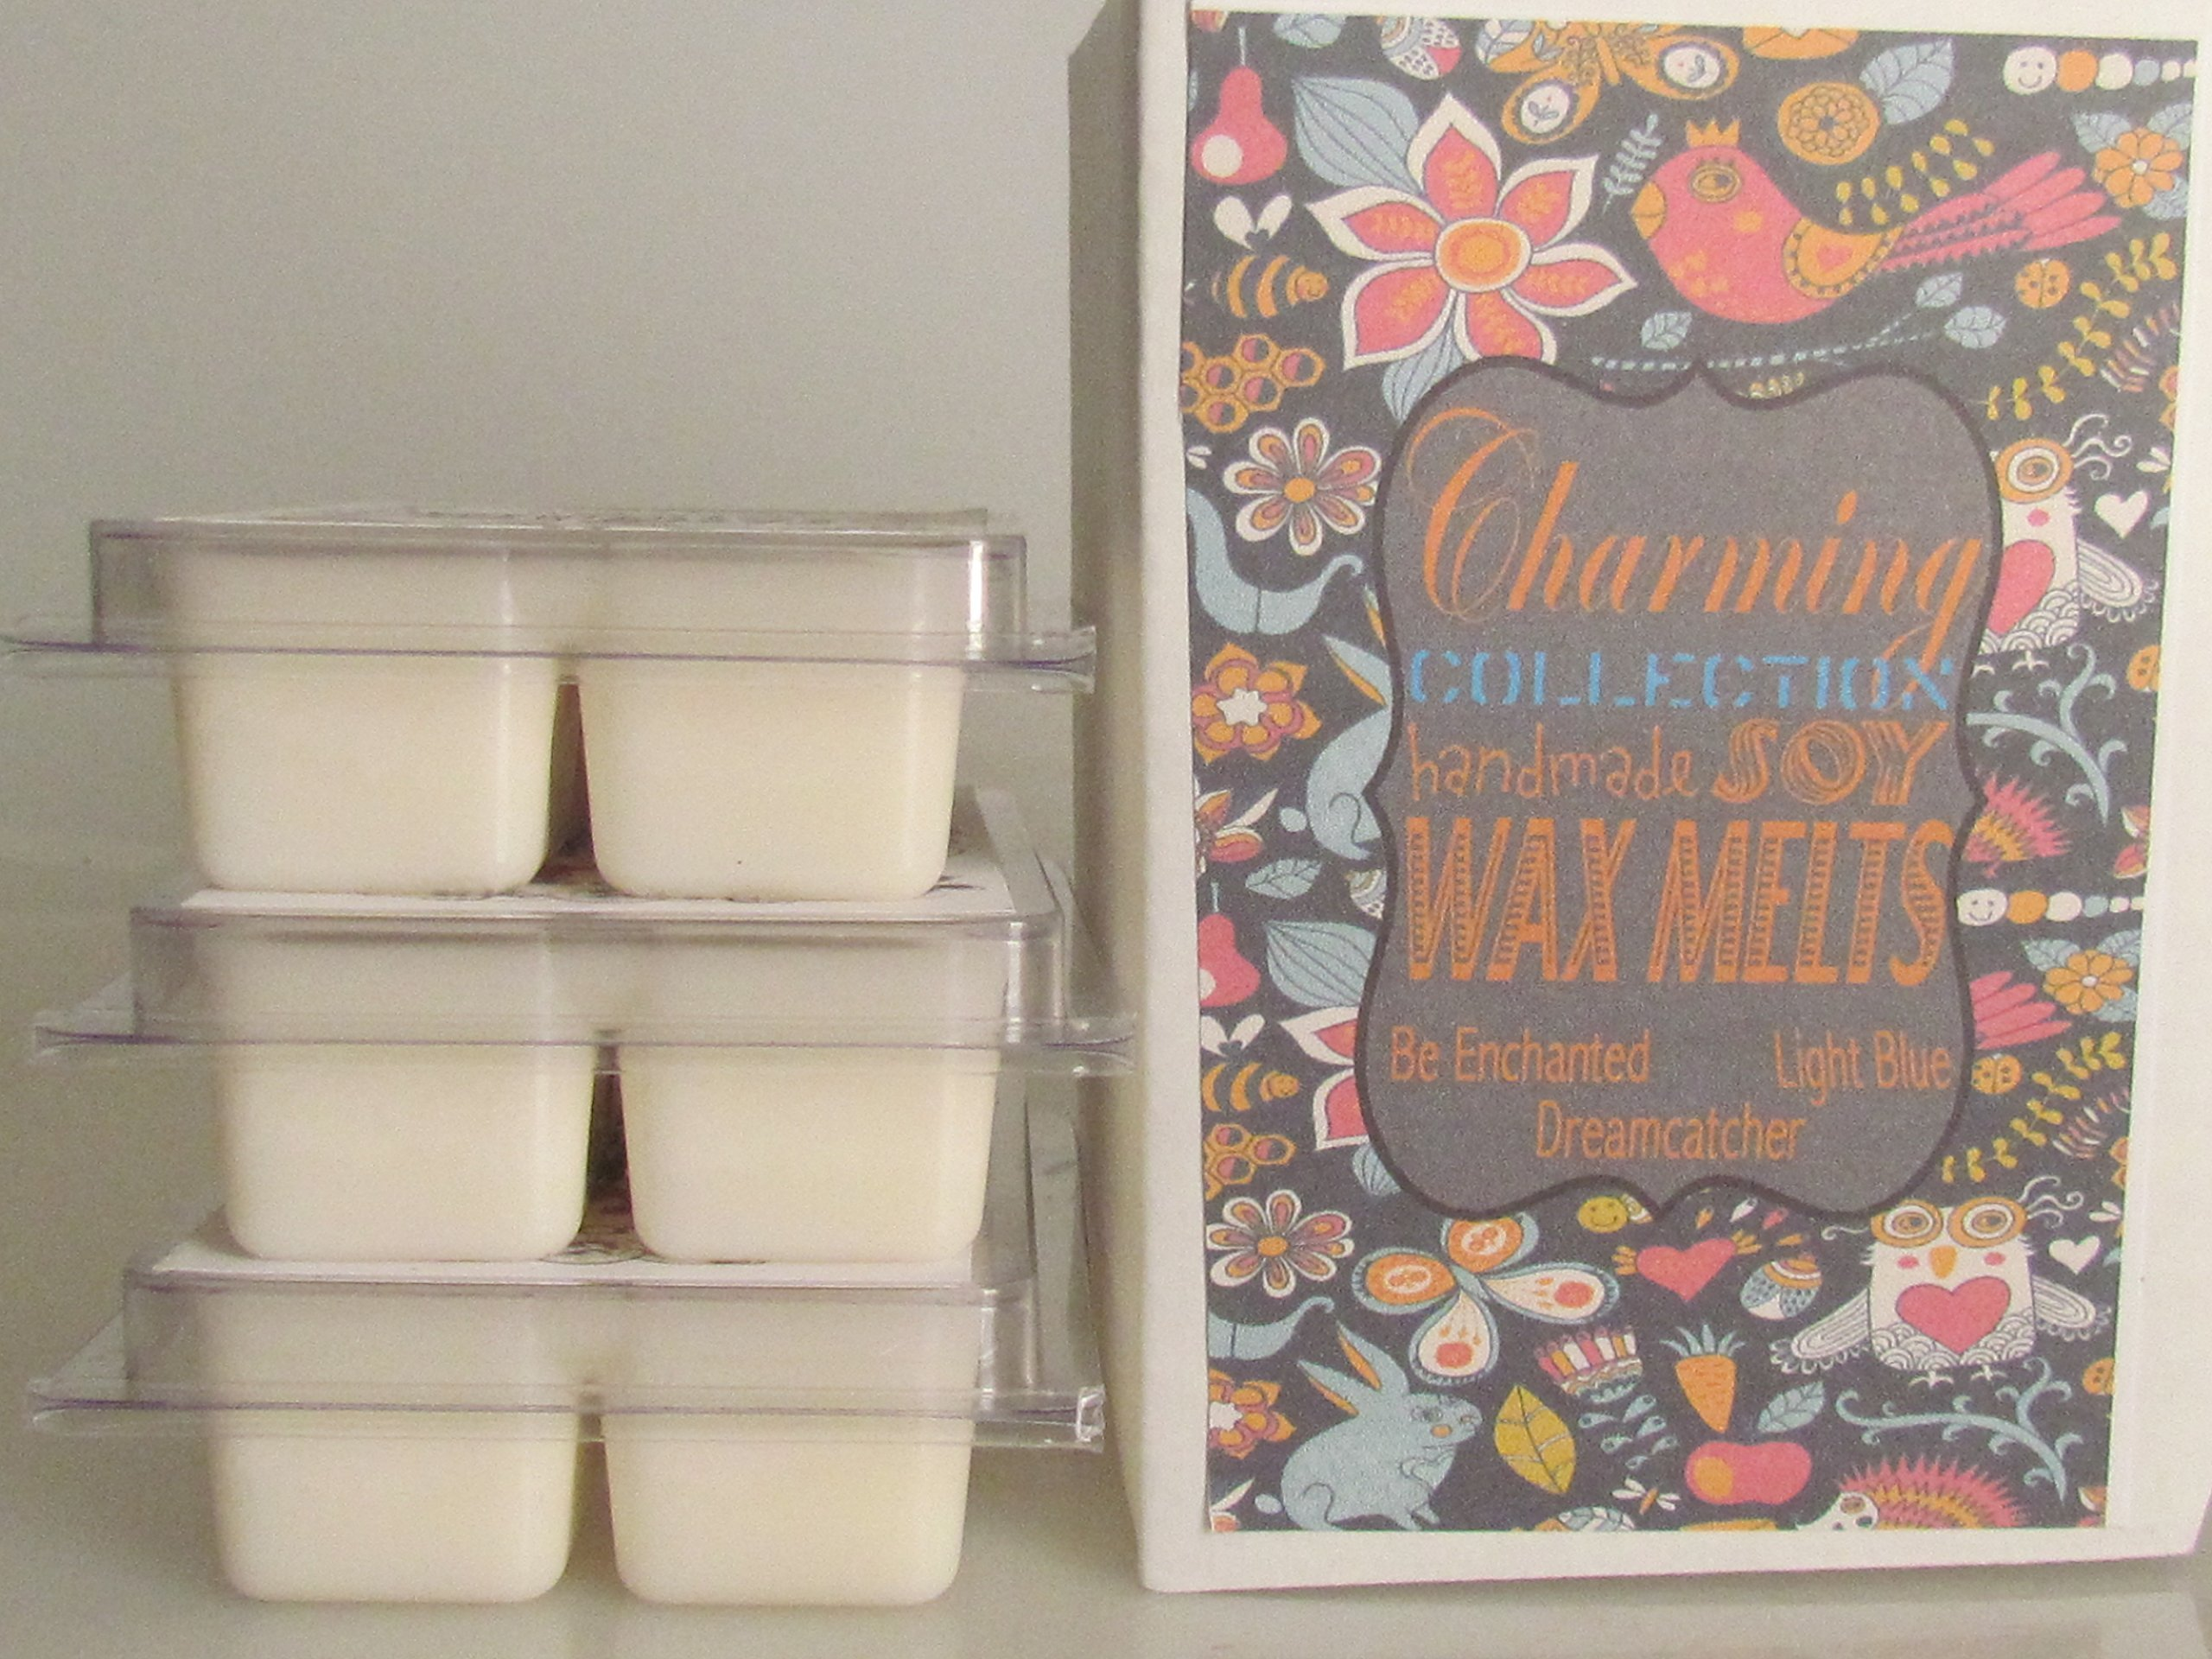 Soy Candle Tarts Wax Melts For Warmers 3 Variety Pack Dream Catcher, Be Enchanted, Light Blue